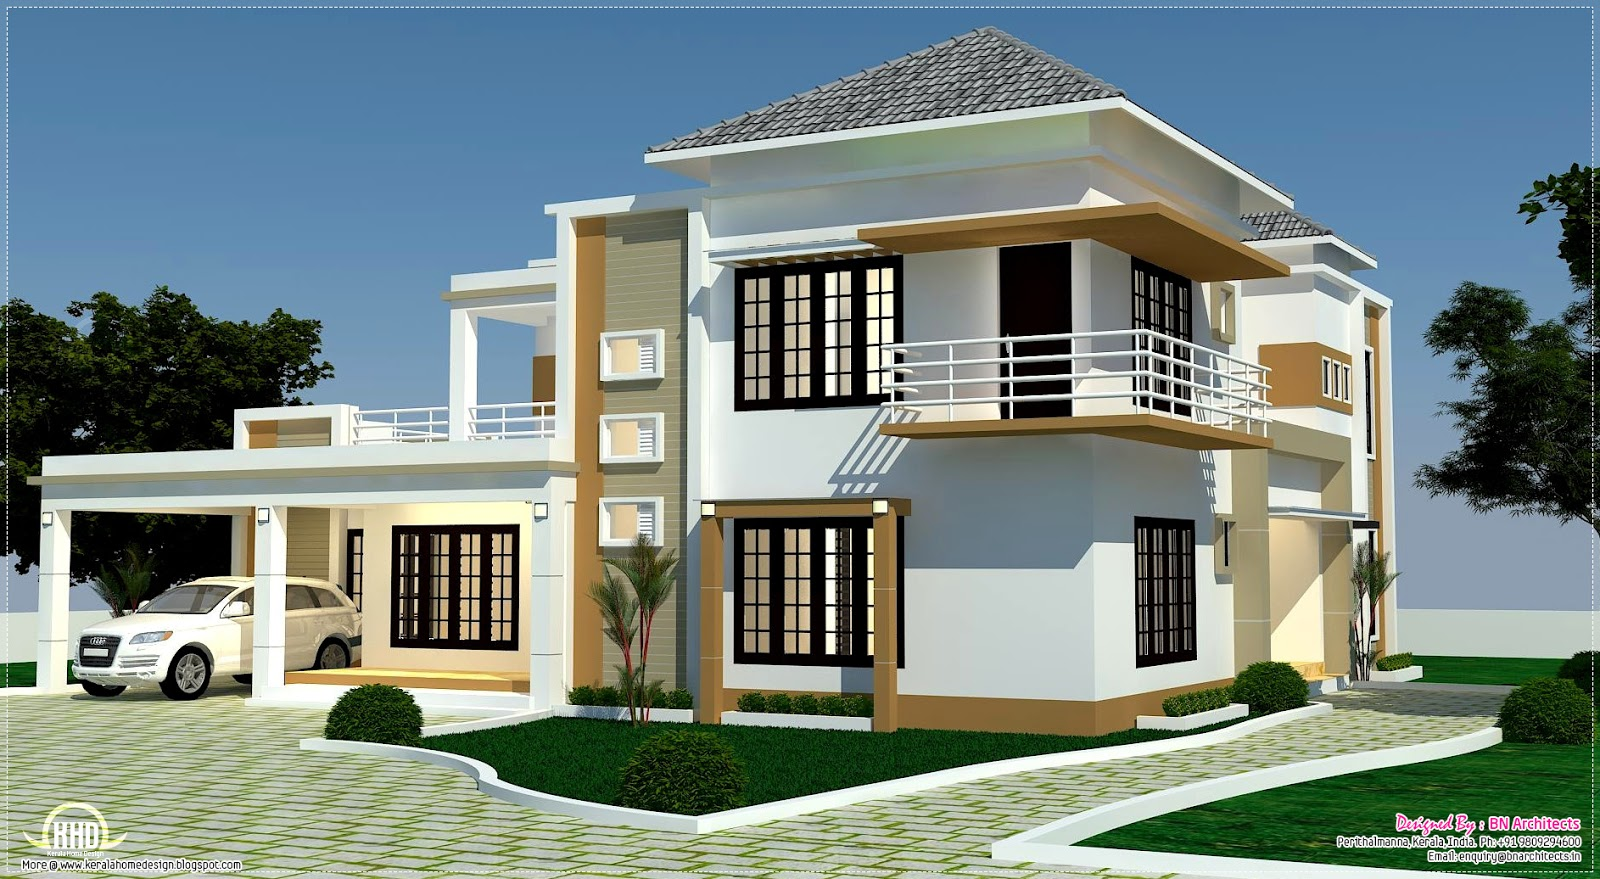 floor plan 3d views and interiors of 4 bedroom villa. Black Bedroom Furniture Sets. Home Design Ideas